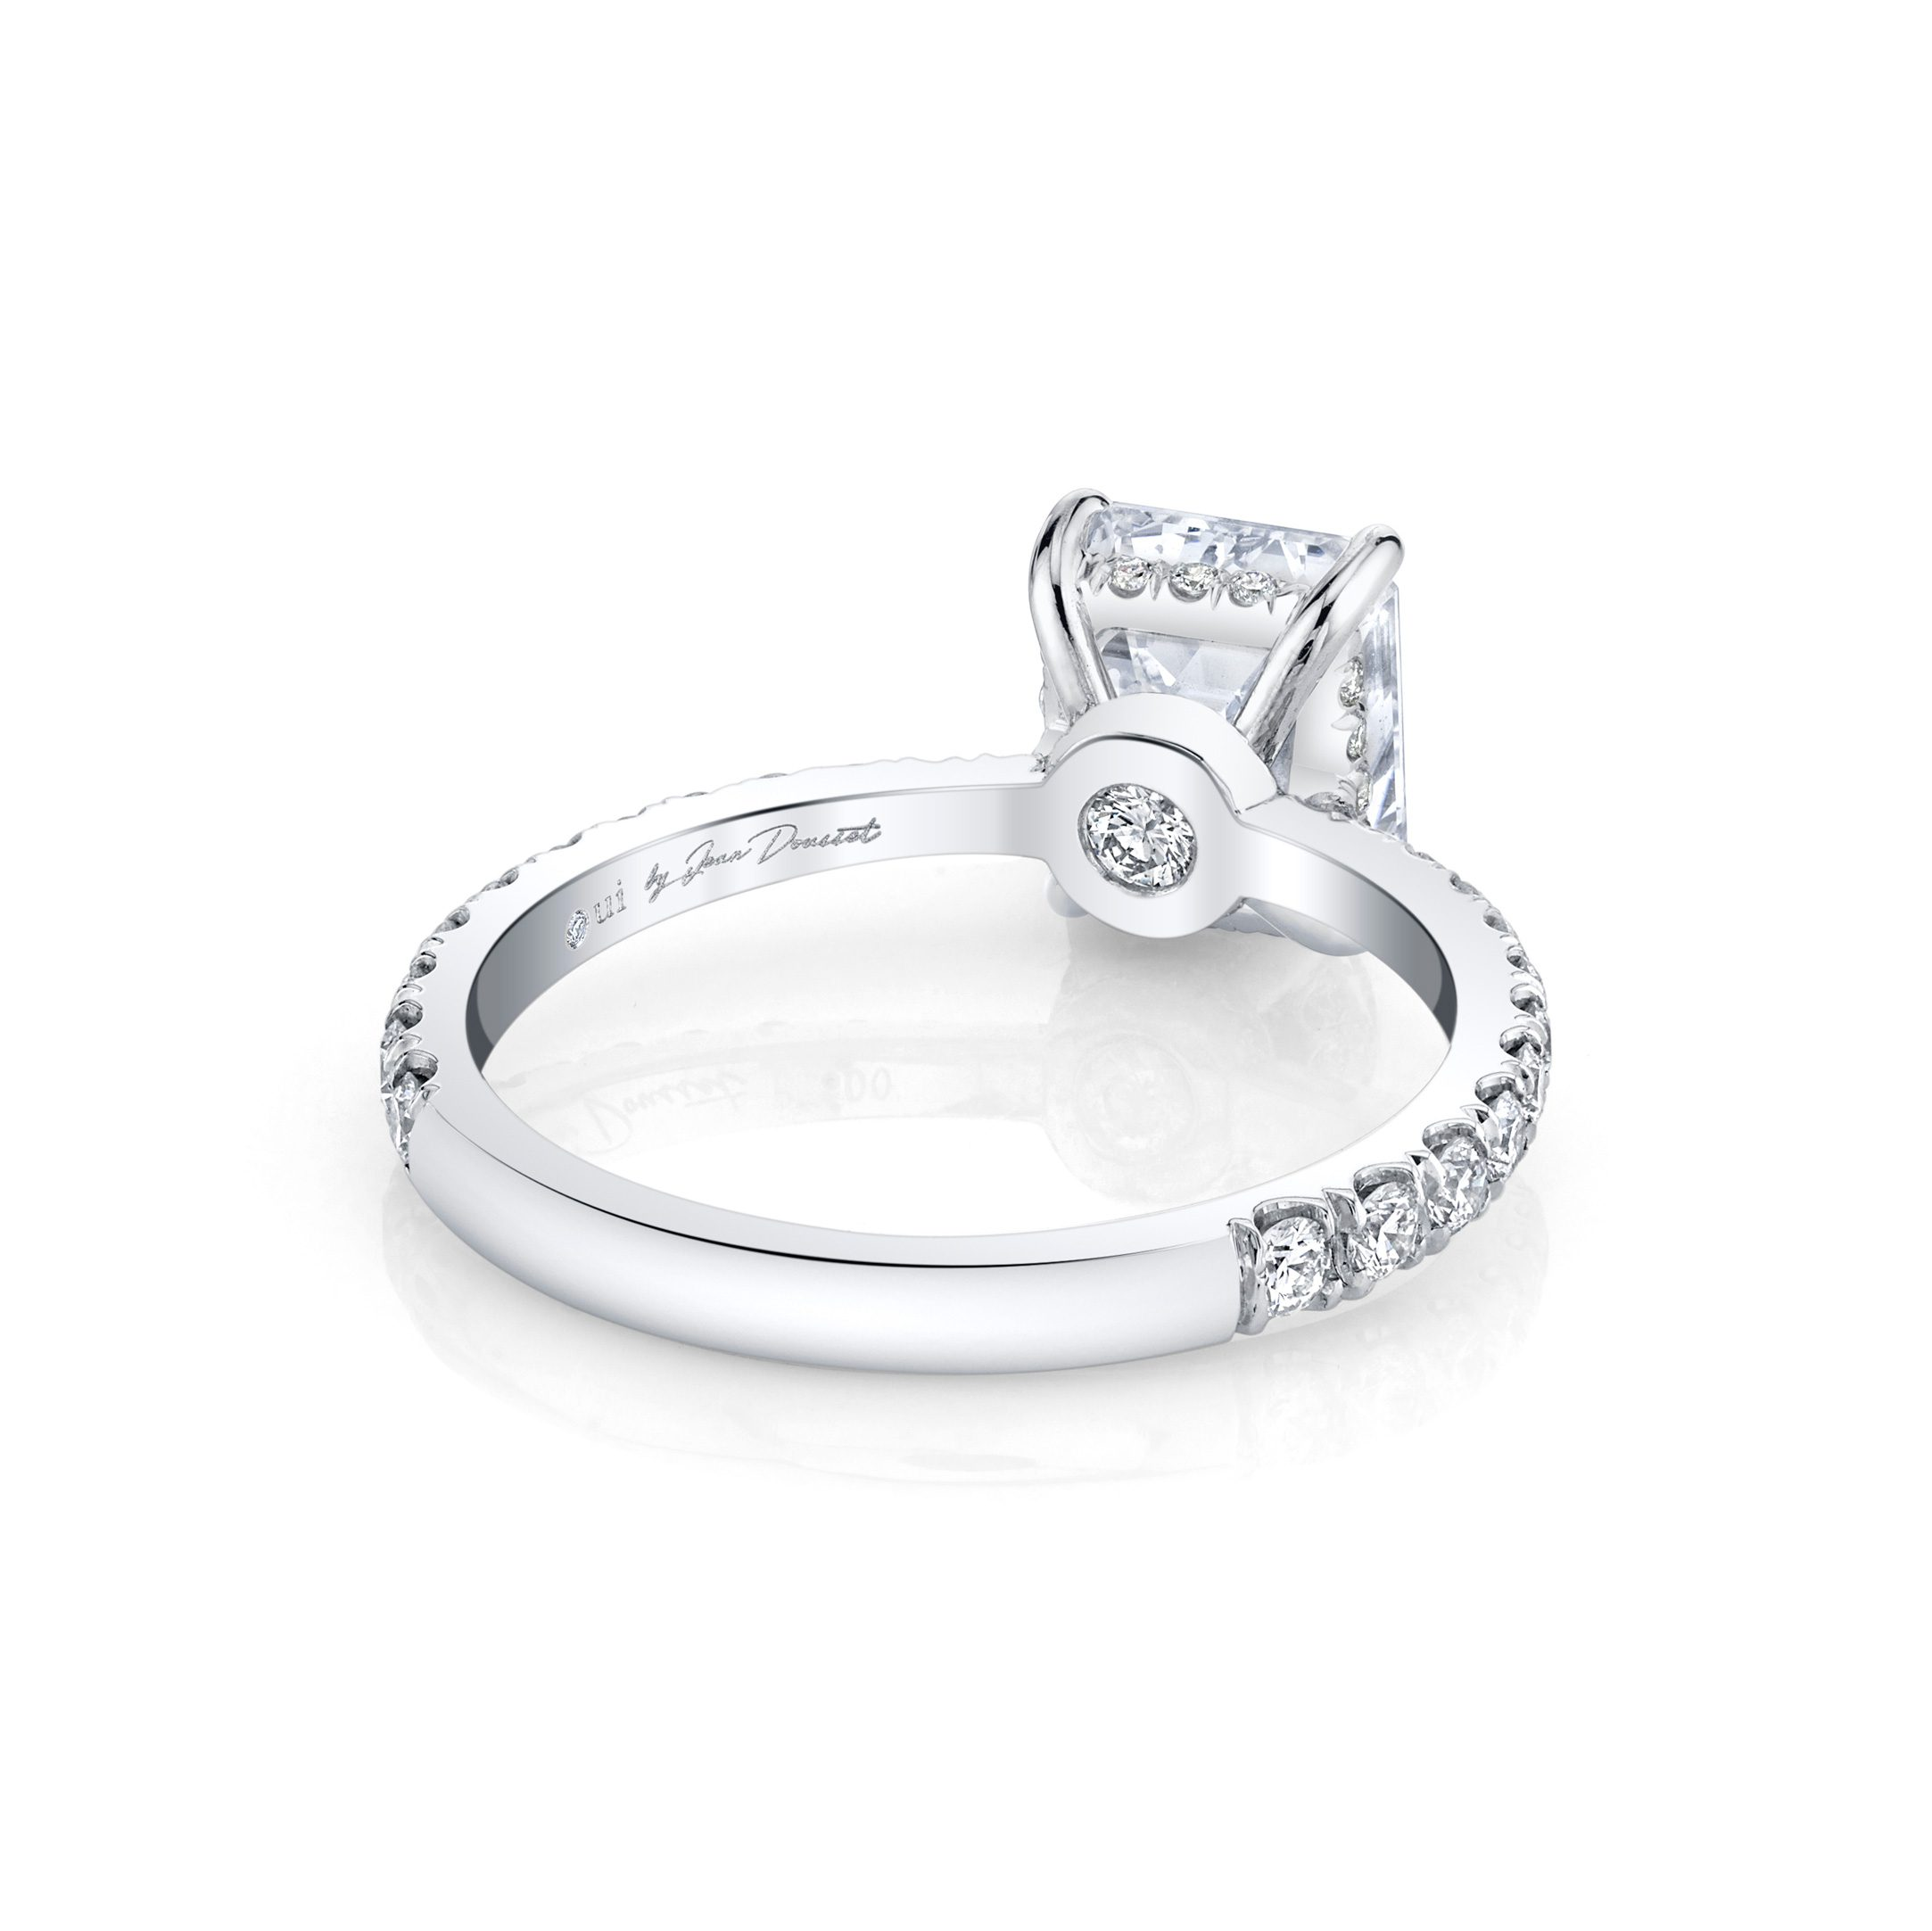 Eloise Emerald Solitaire Engagement Ring with a diamond pavé band in 18k White Gold Back View by Oui by Jean Dousset